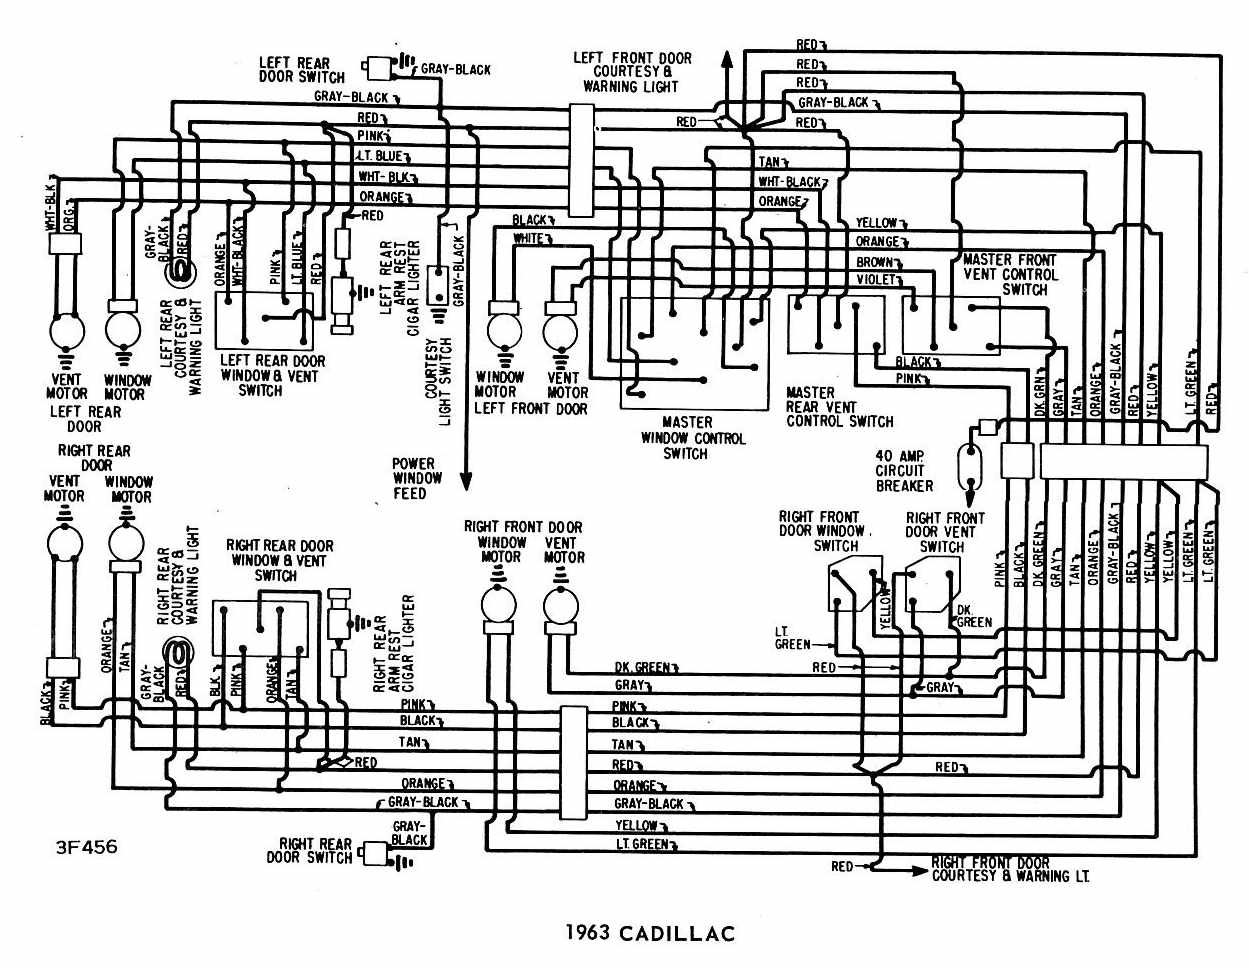 Cadillac+1963+Windows+Wiring+Diagram cadillac 1963 windows wiring diagram all about wiring diagrams 67 cadillac wiring diagram at mifinder.co